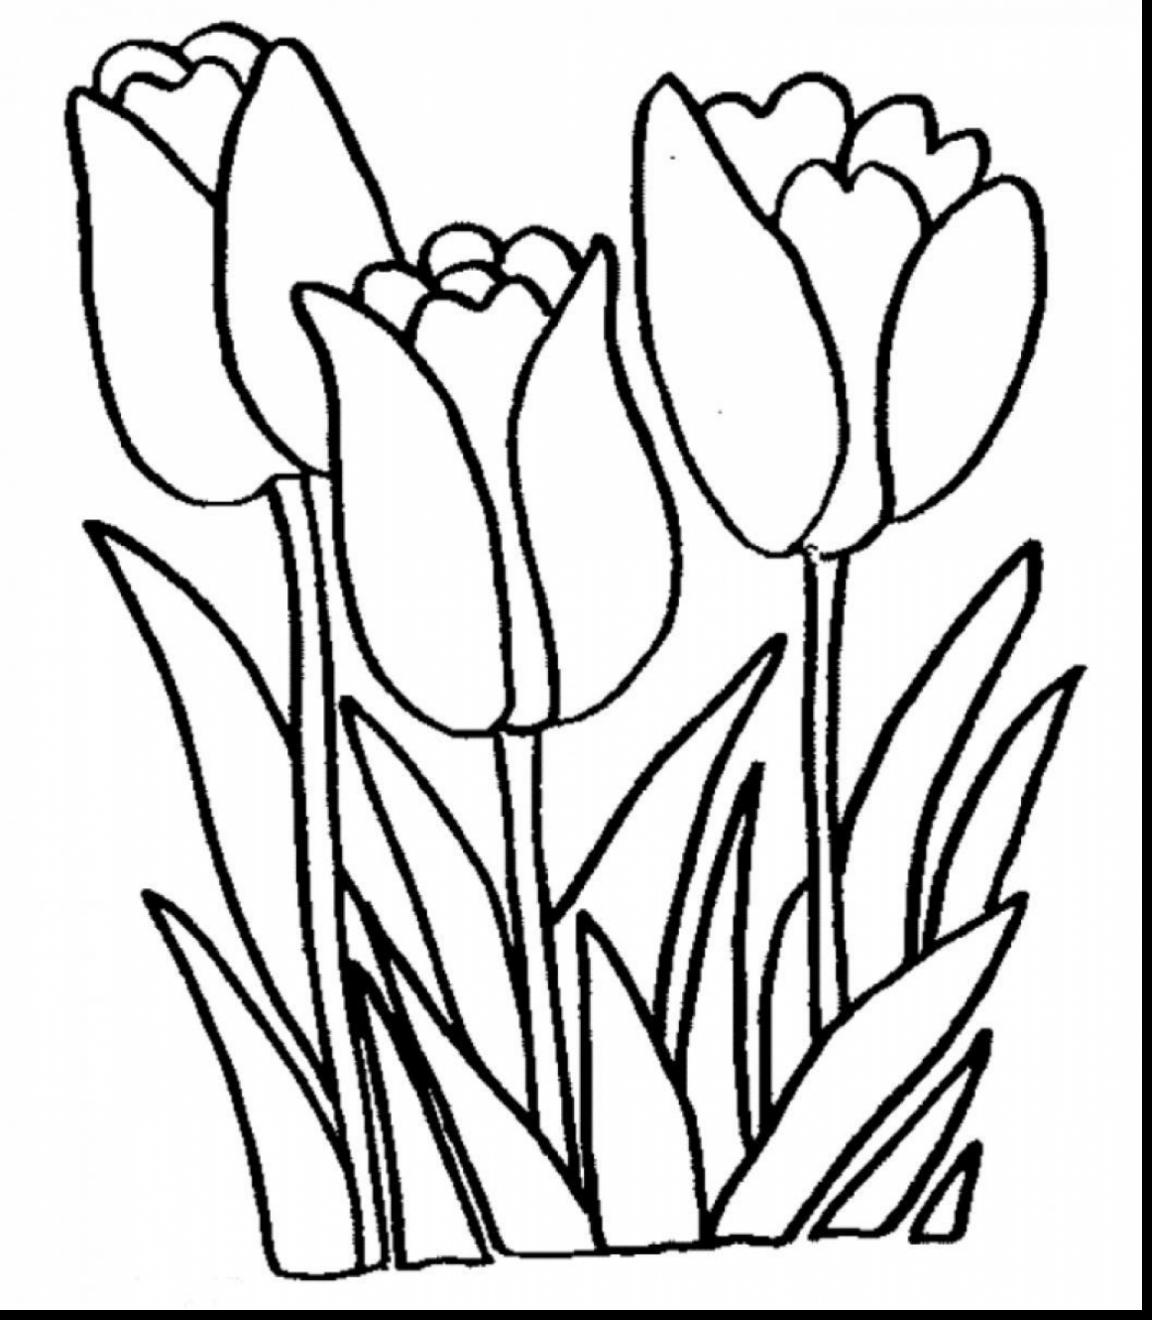 coloring flower clipart black and white spring flowers black and white clipart free download on white and black clipart flower coloring